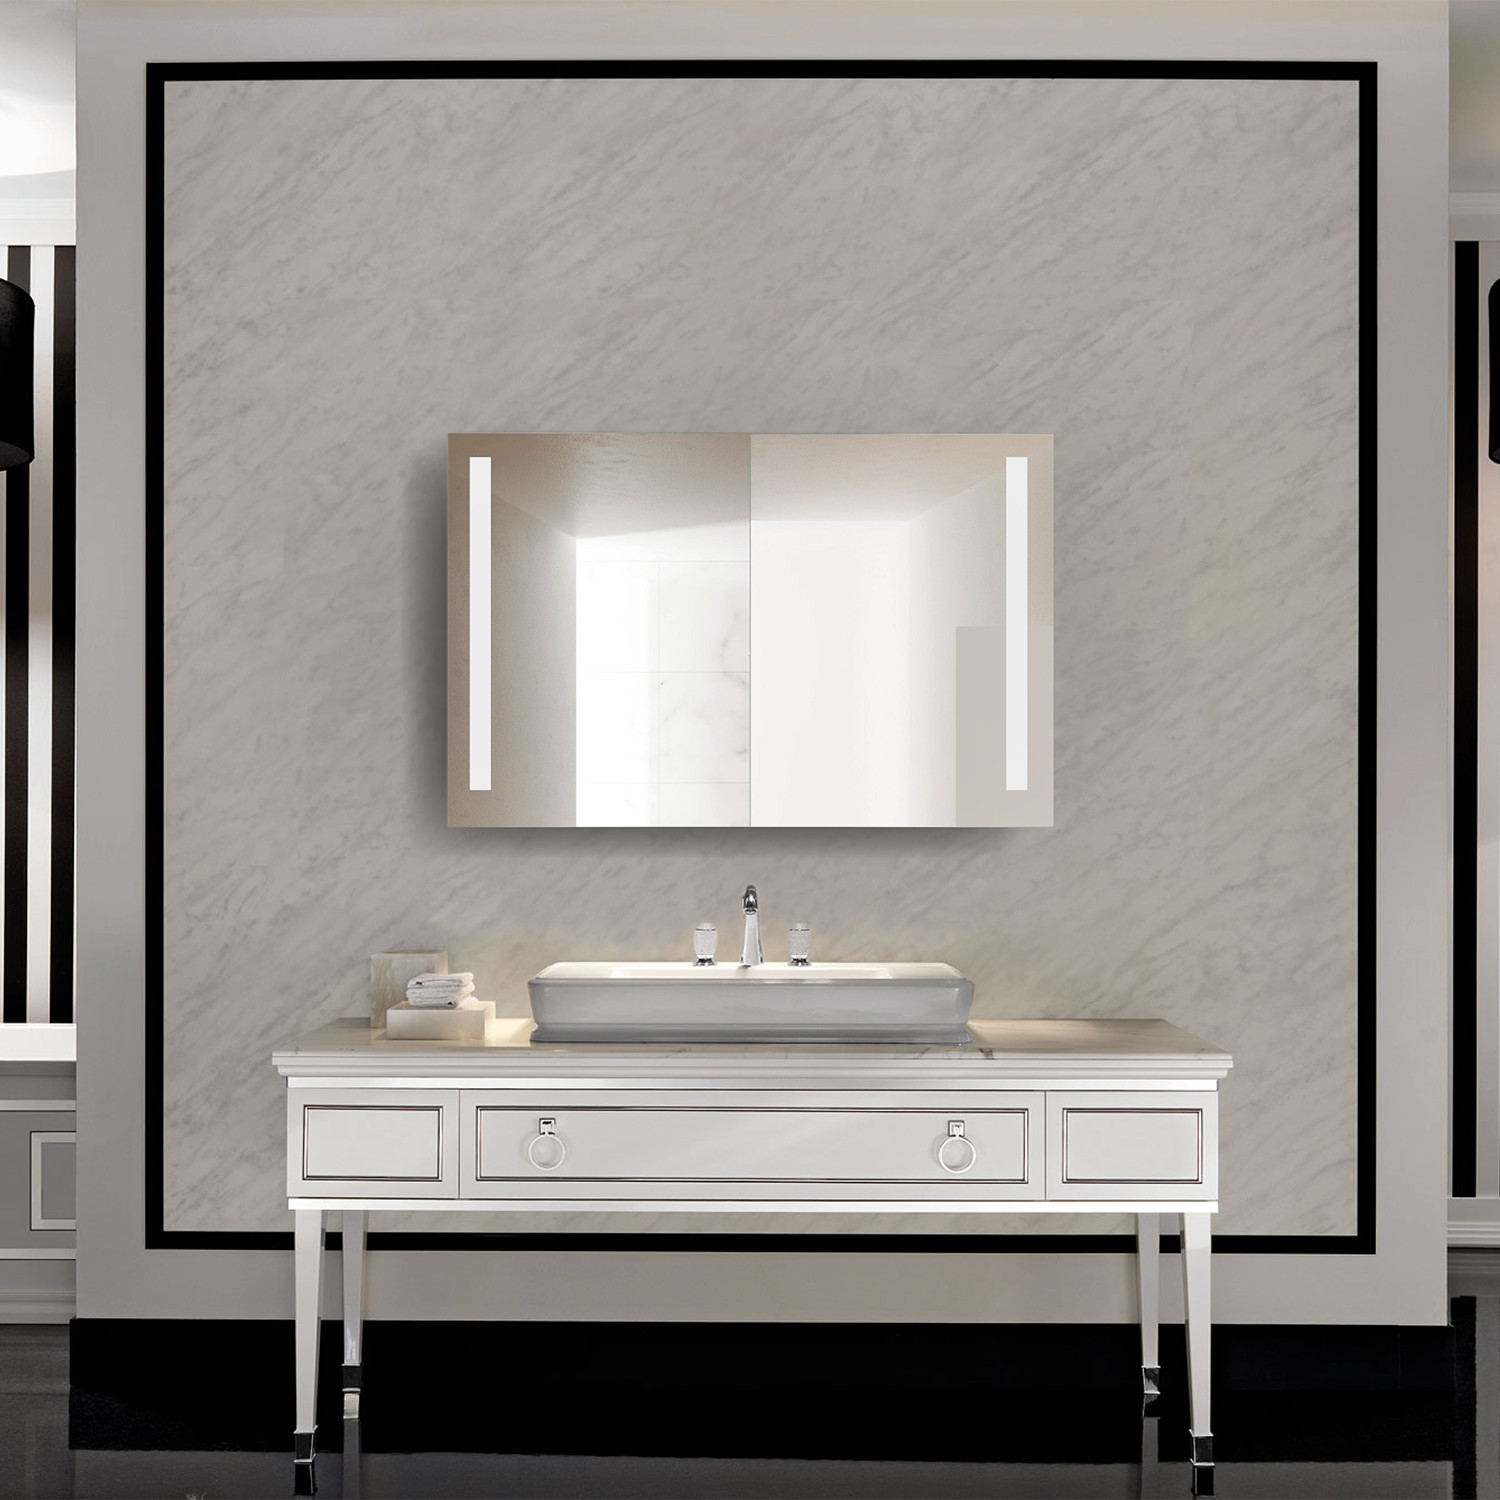 Led Medicine Cabinet Defogger Double Sliding Mirror Outlet Shelves Krugg Reflections